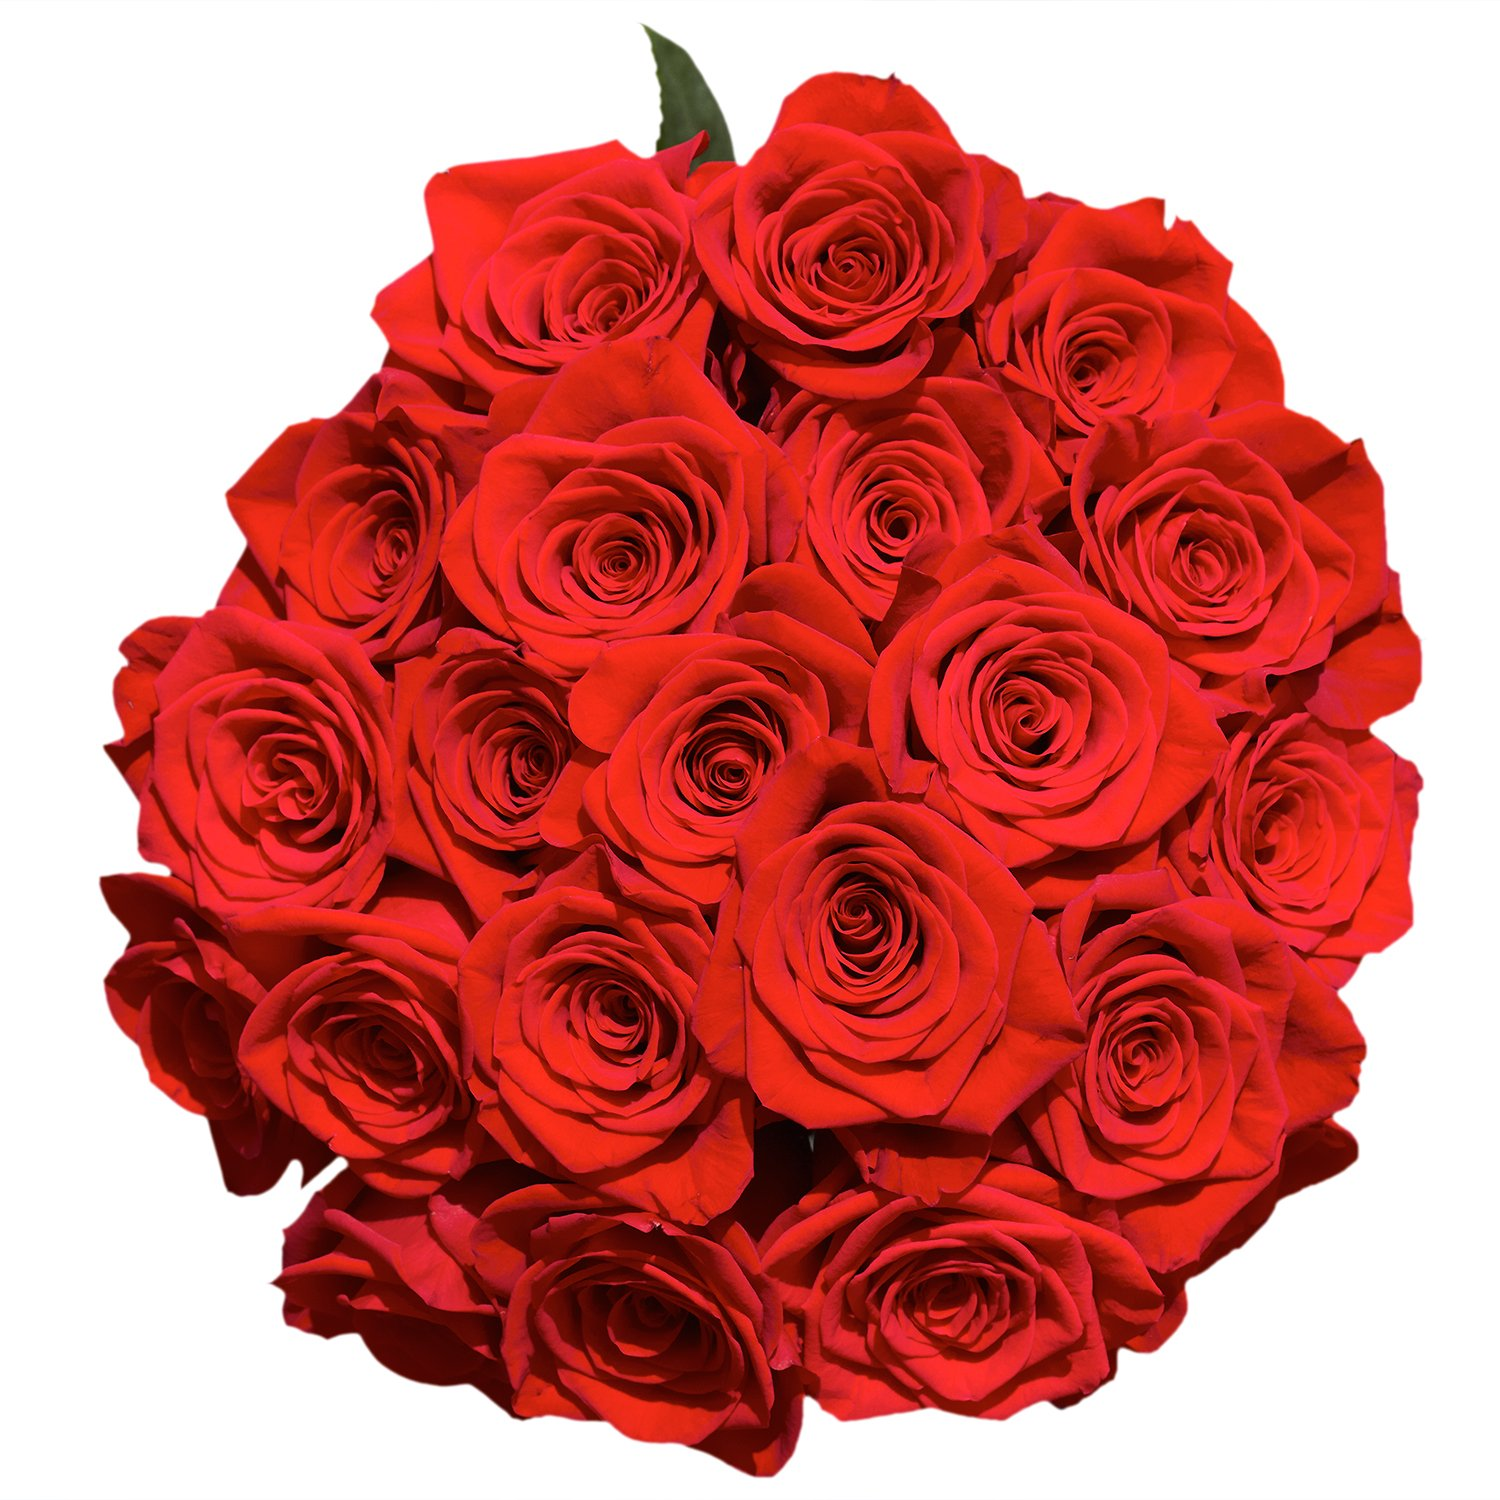 GlobalRose 50 Red Roses - Beautiful Fresh Cut Flowers Express Delivery - Perfect for Birthdays, Anniversaries, Weddings and Special Occassions.